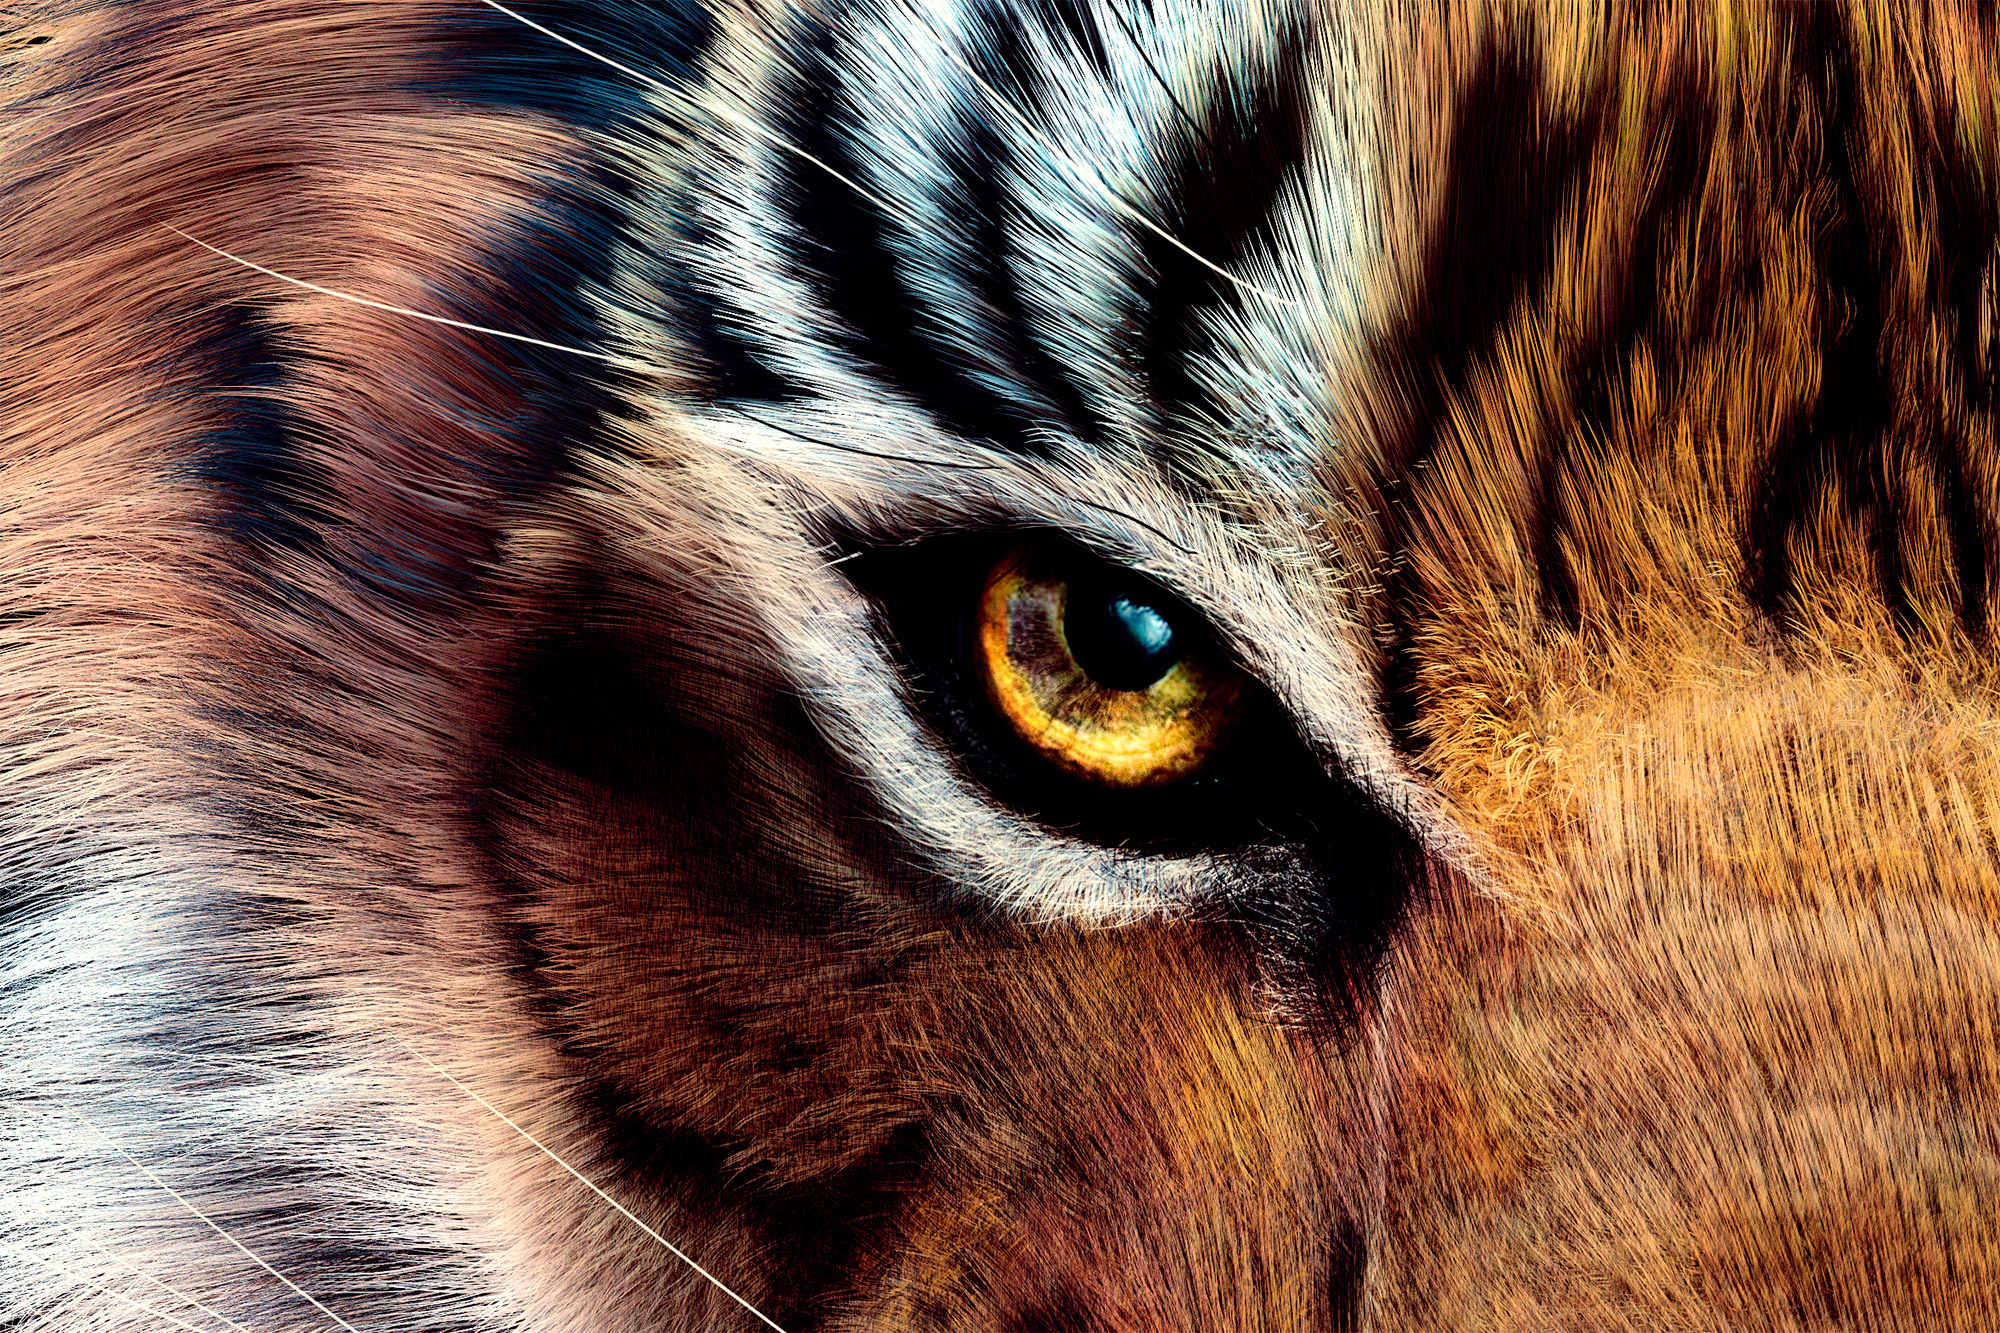 tiger_close_up.jpg